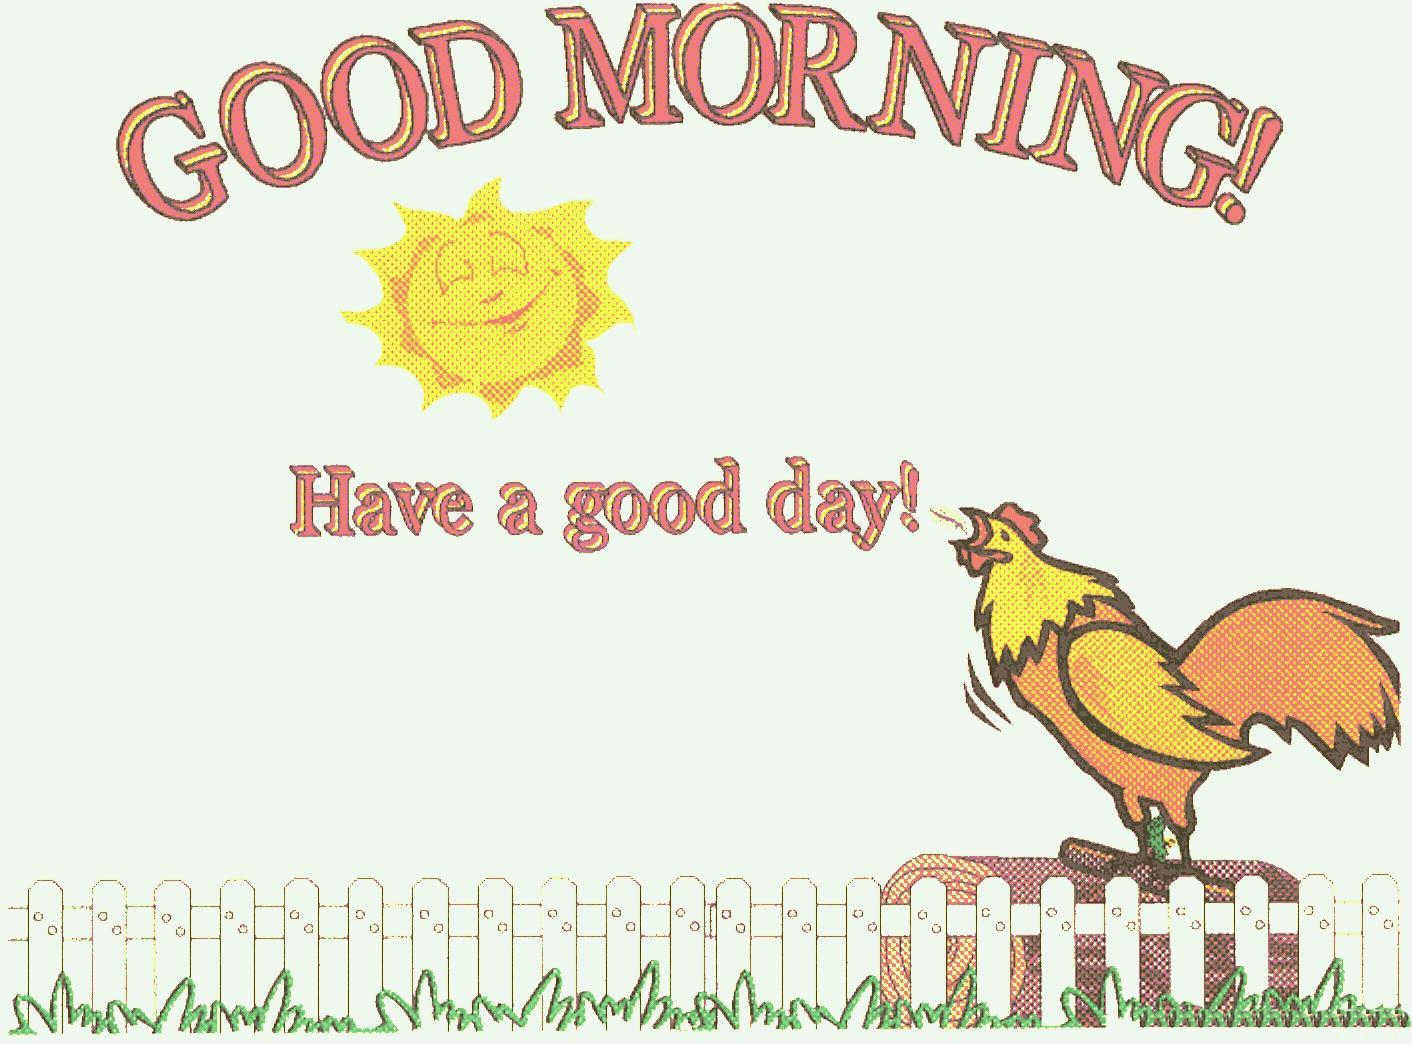 http://2.bp.blogspot.com/-YMdJSAgkFyc/UP1OrUO0eLI/AAAAAAAAIQE/dF84PMzfocc/s1600/good-morning-rooster+hd+wallpaper.jpg